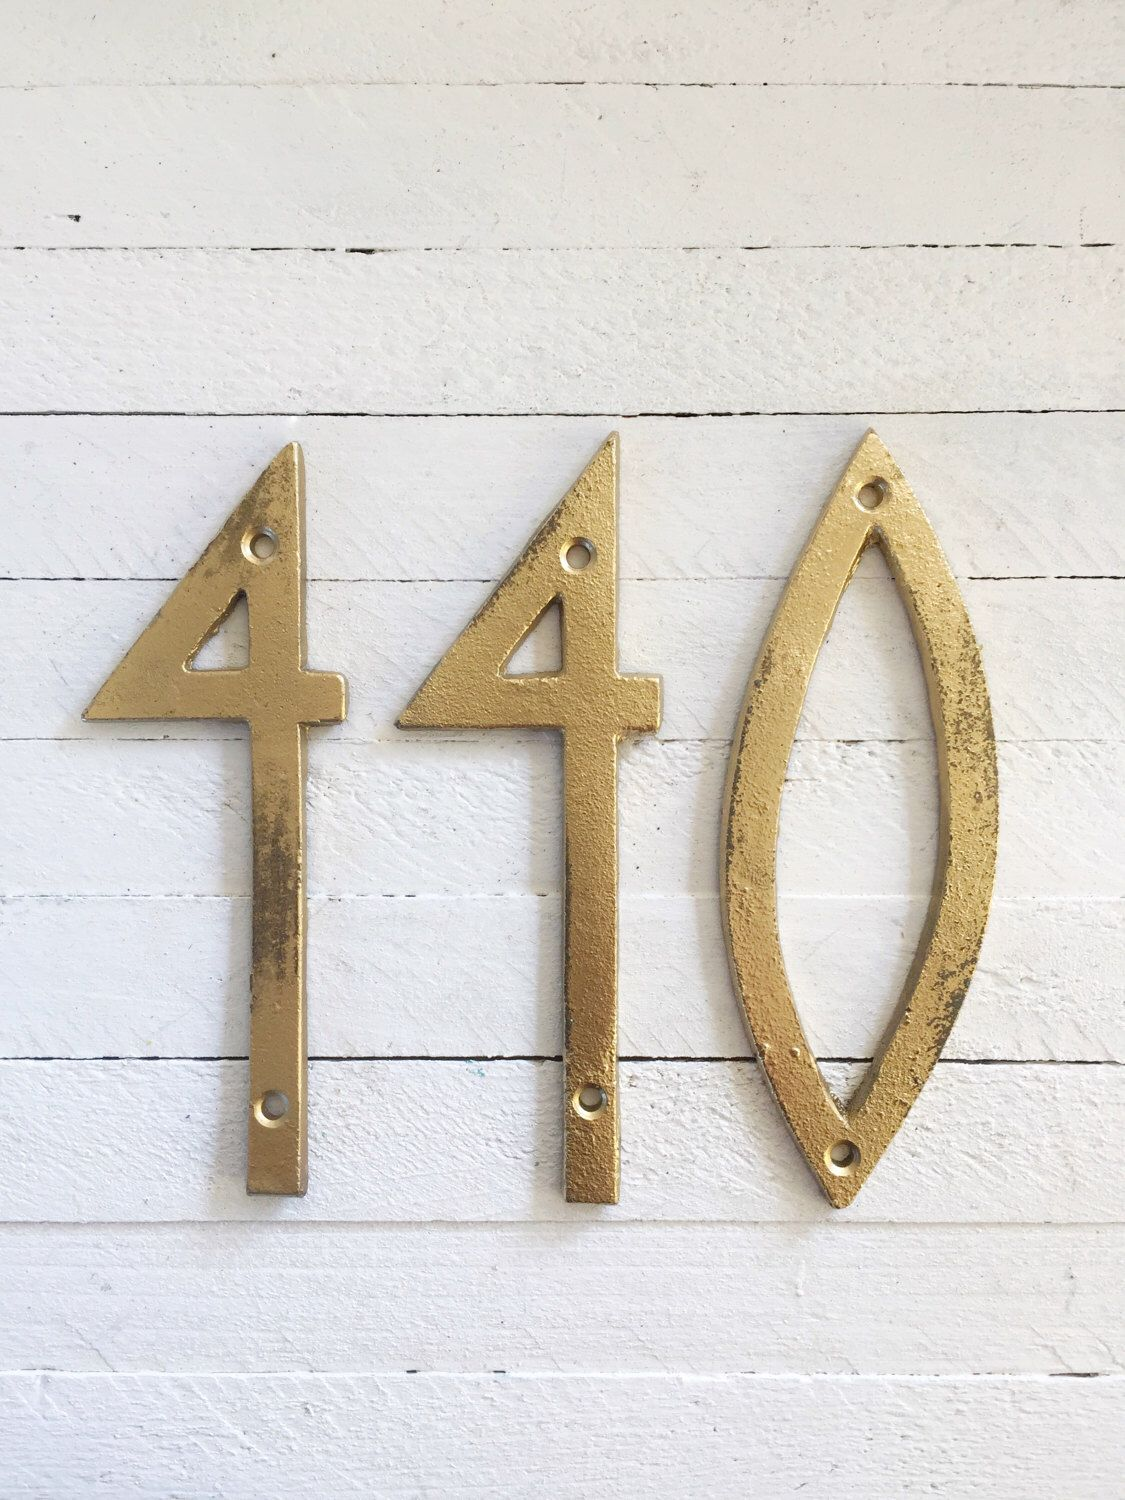 Modern house numbers mid century modern iron decor cast iron numbers modern style house numbers wedding numbers by camillacotton on etsy